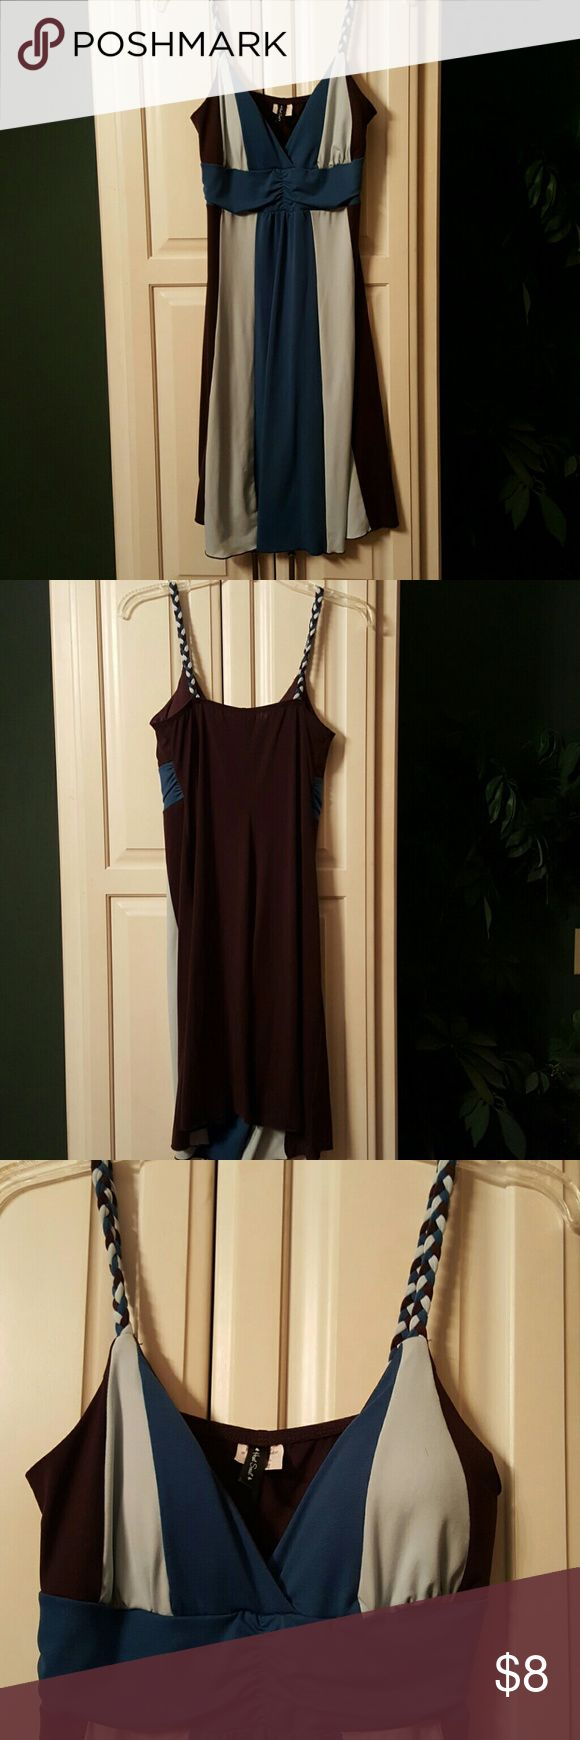 Two tone blue and brown maxi dress Two tone blue and brown maxi dress. Knee length, slight padding to the cups and braided straps. Very comfortable fabric,  worn once to a wedding. Size large, very stretchy fabric, fits more like a medium. HeartSoul Dresses Midi